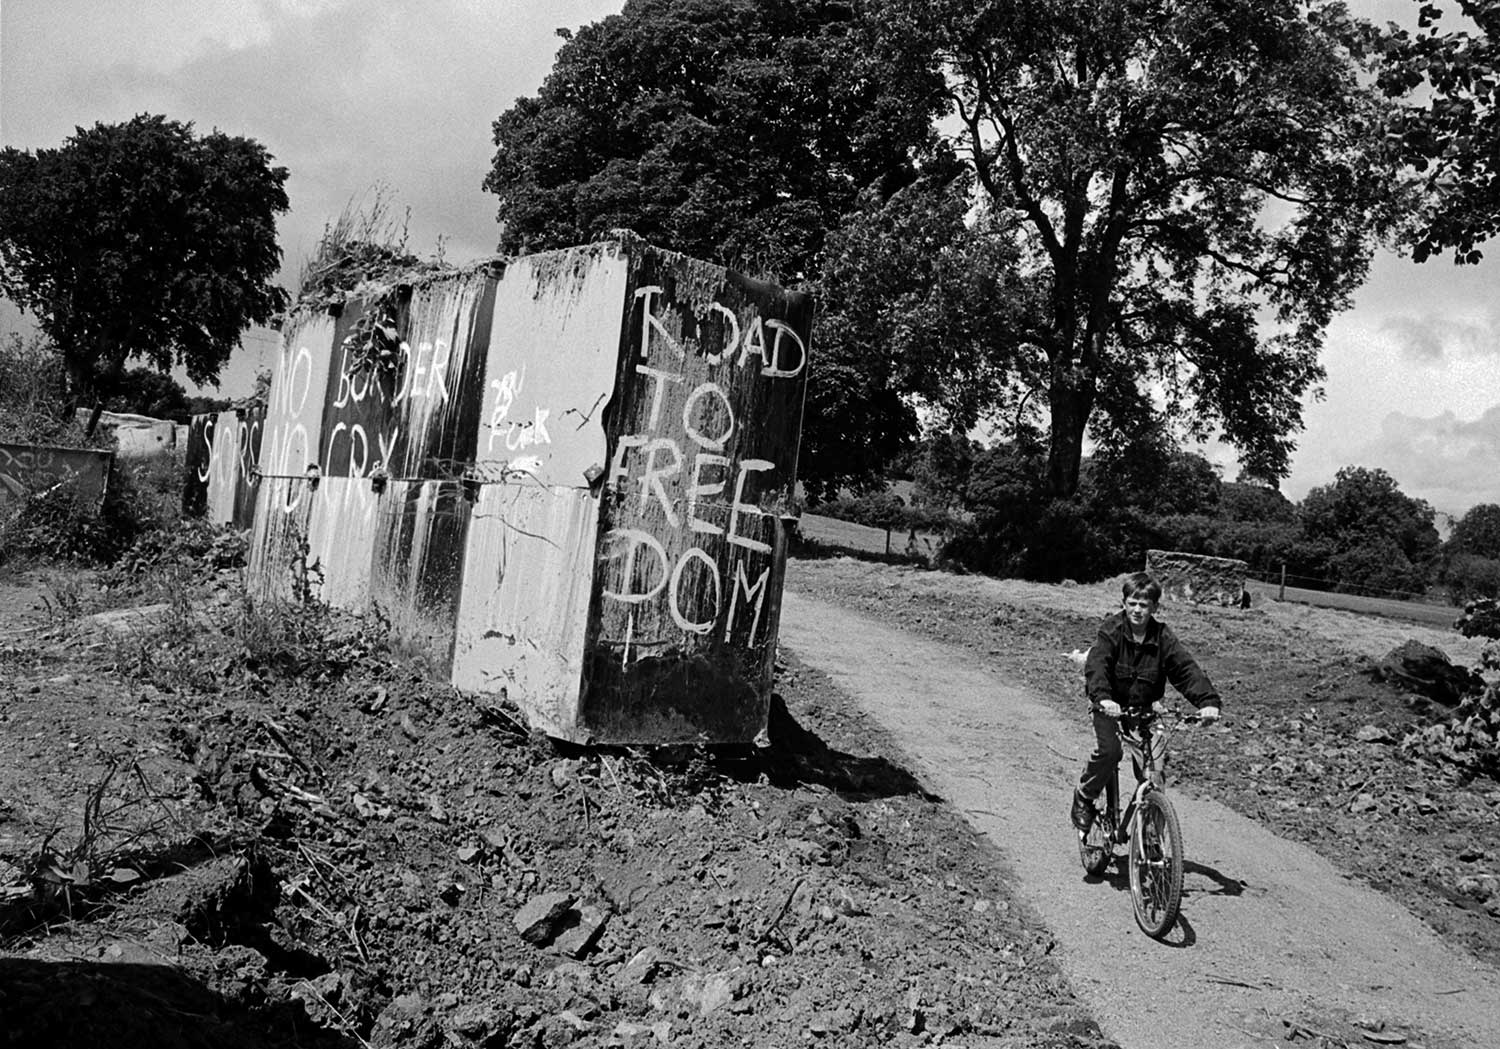 A young boy on his bike cycles on a dirt track past large concrete blocks painted with graffiti criticising the border